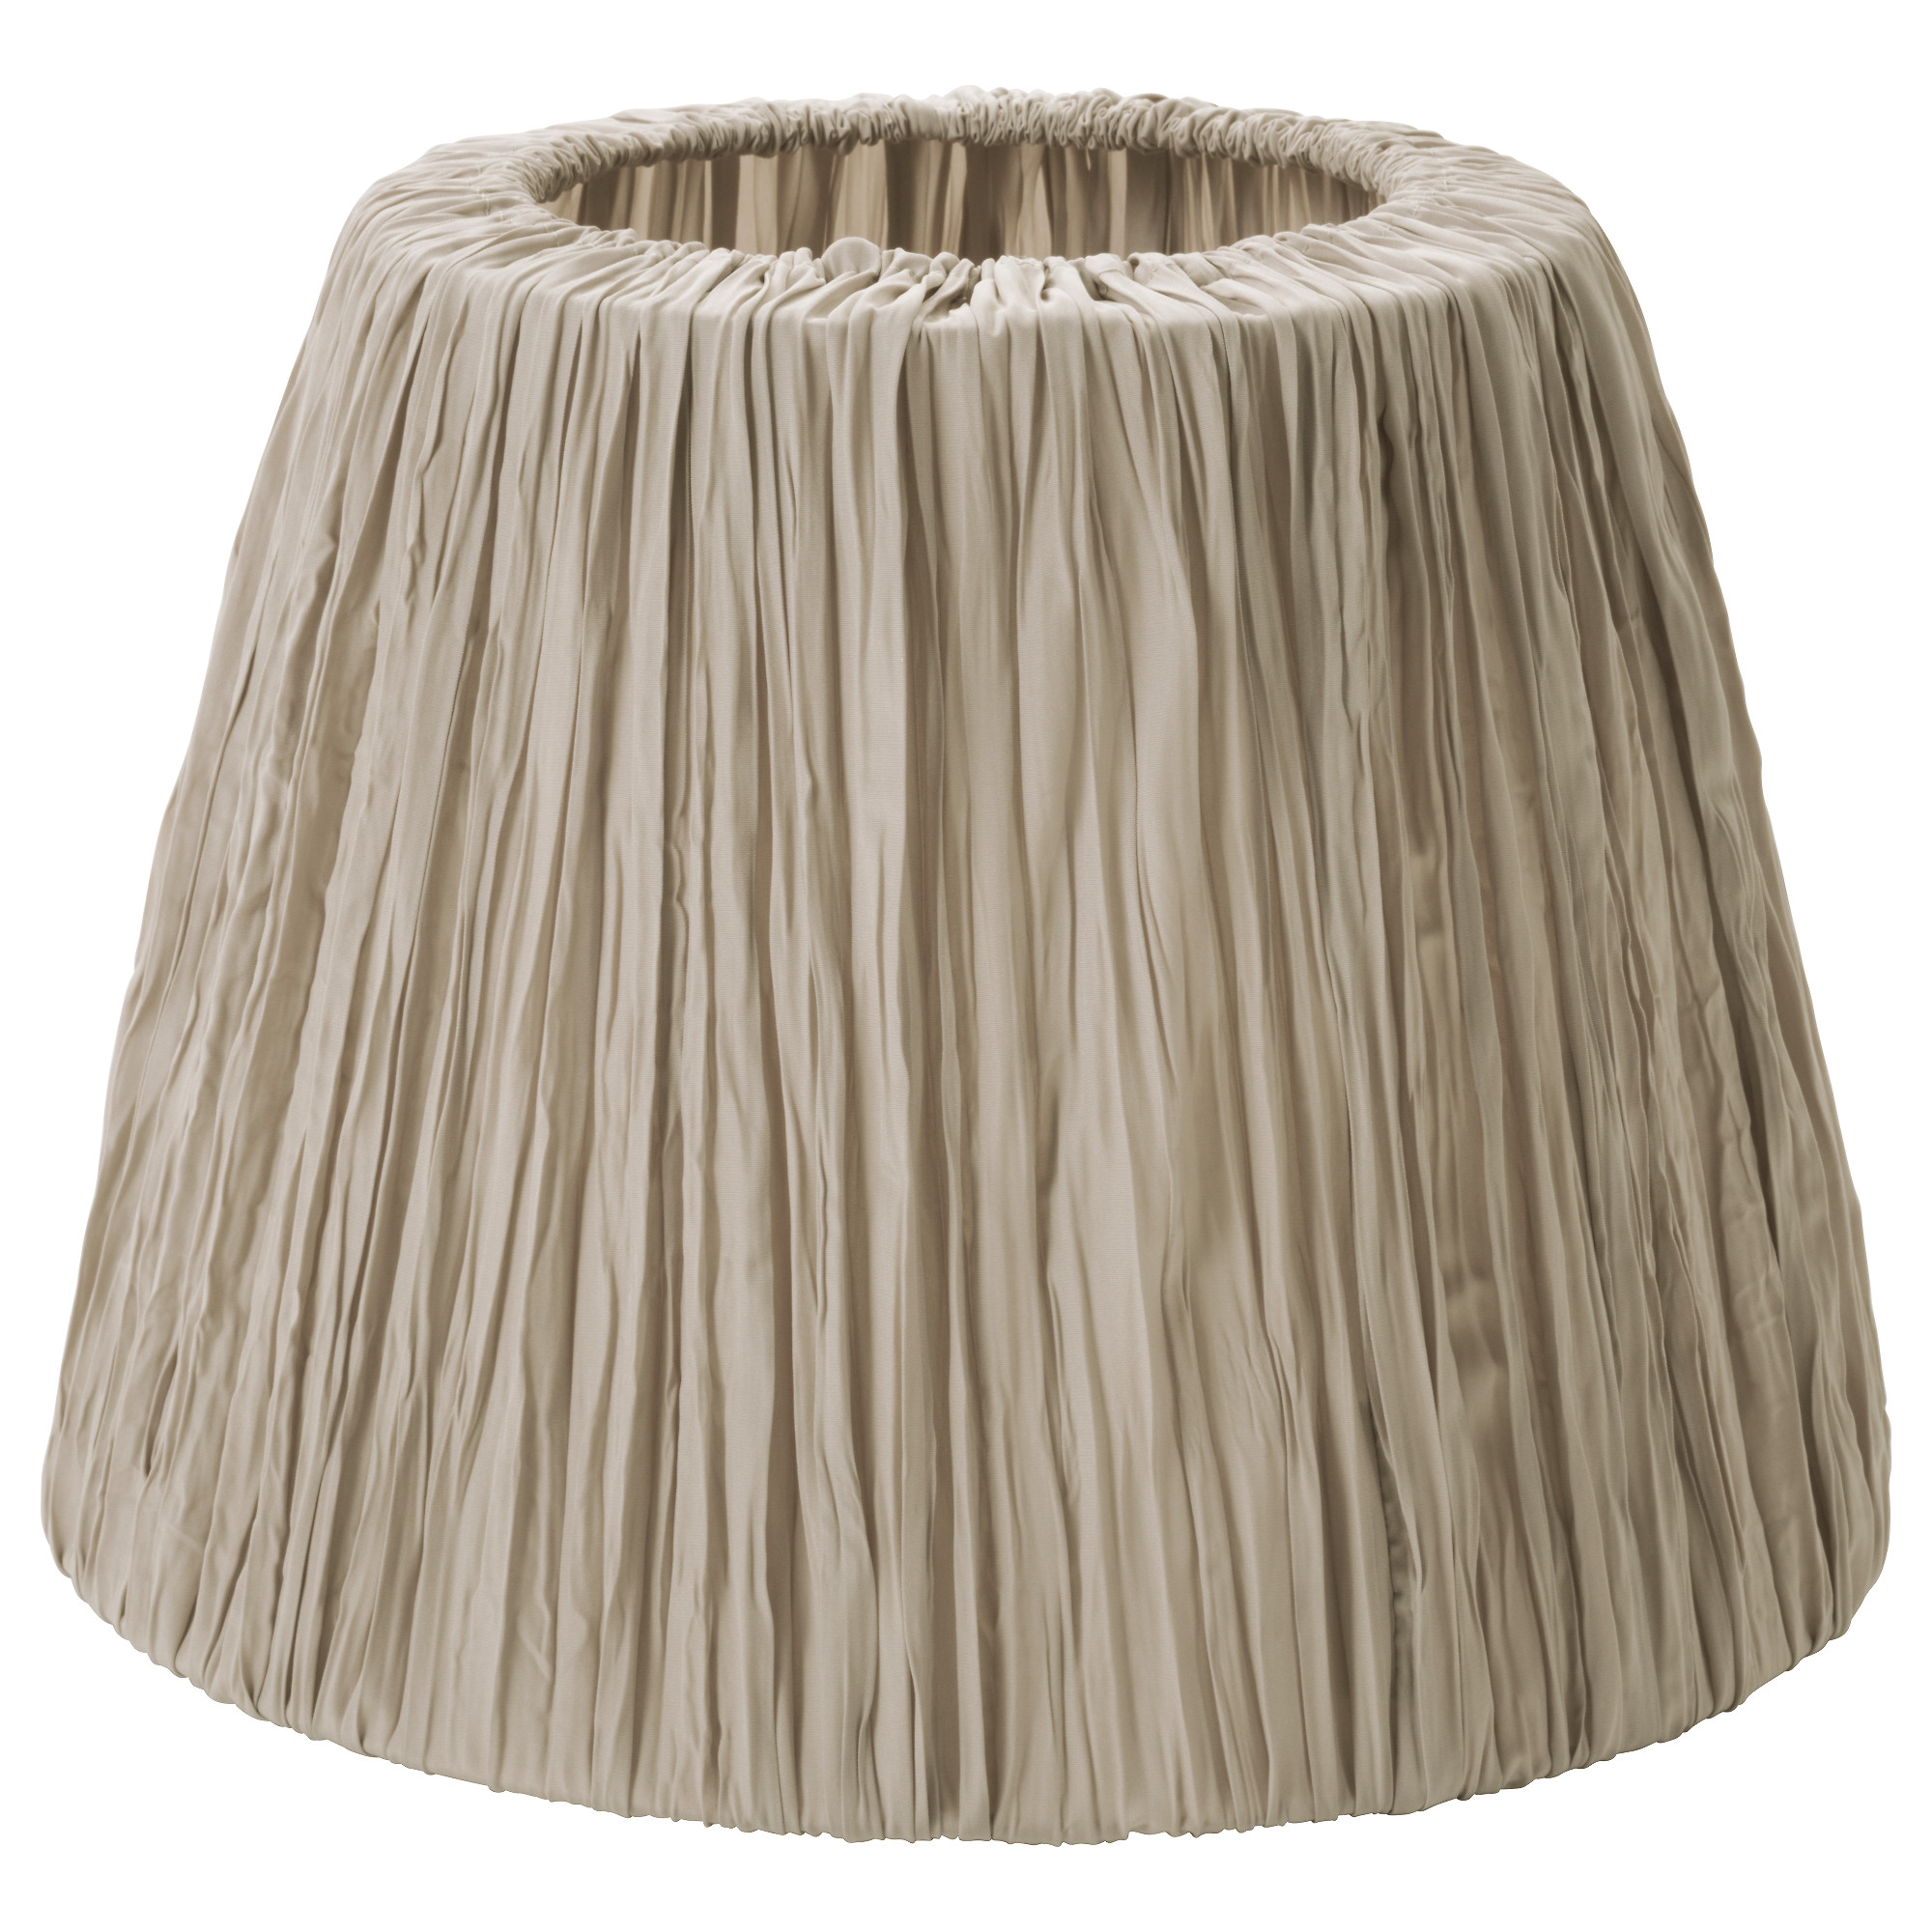 Lamp Shades Ikea Inside Clip On Drum Chandelier Shades (View 11 of 25)